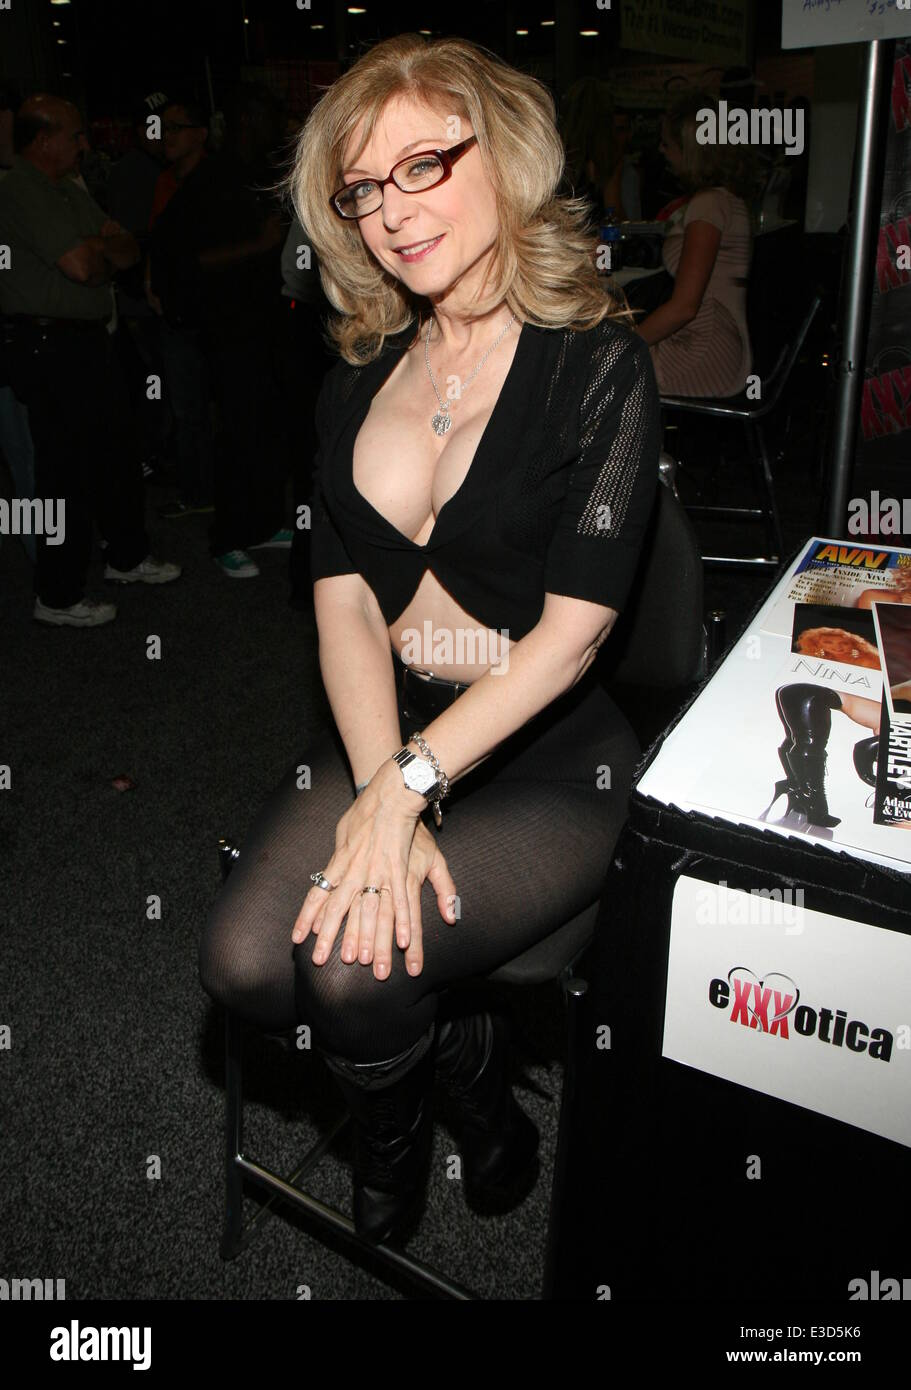 Exxxotica Expo 2013 held at Edison's New Jersey Convention and Exposition  Center Featuring: Nina Hartley